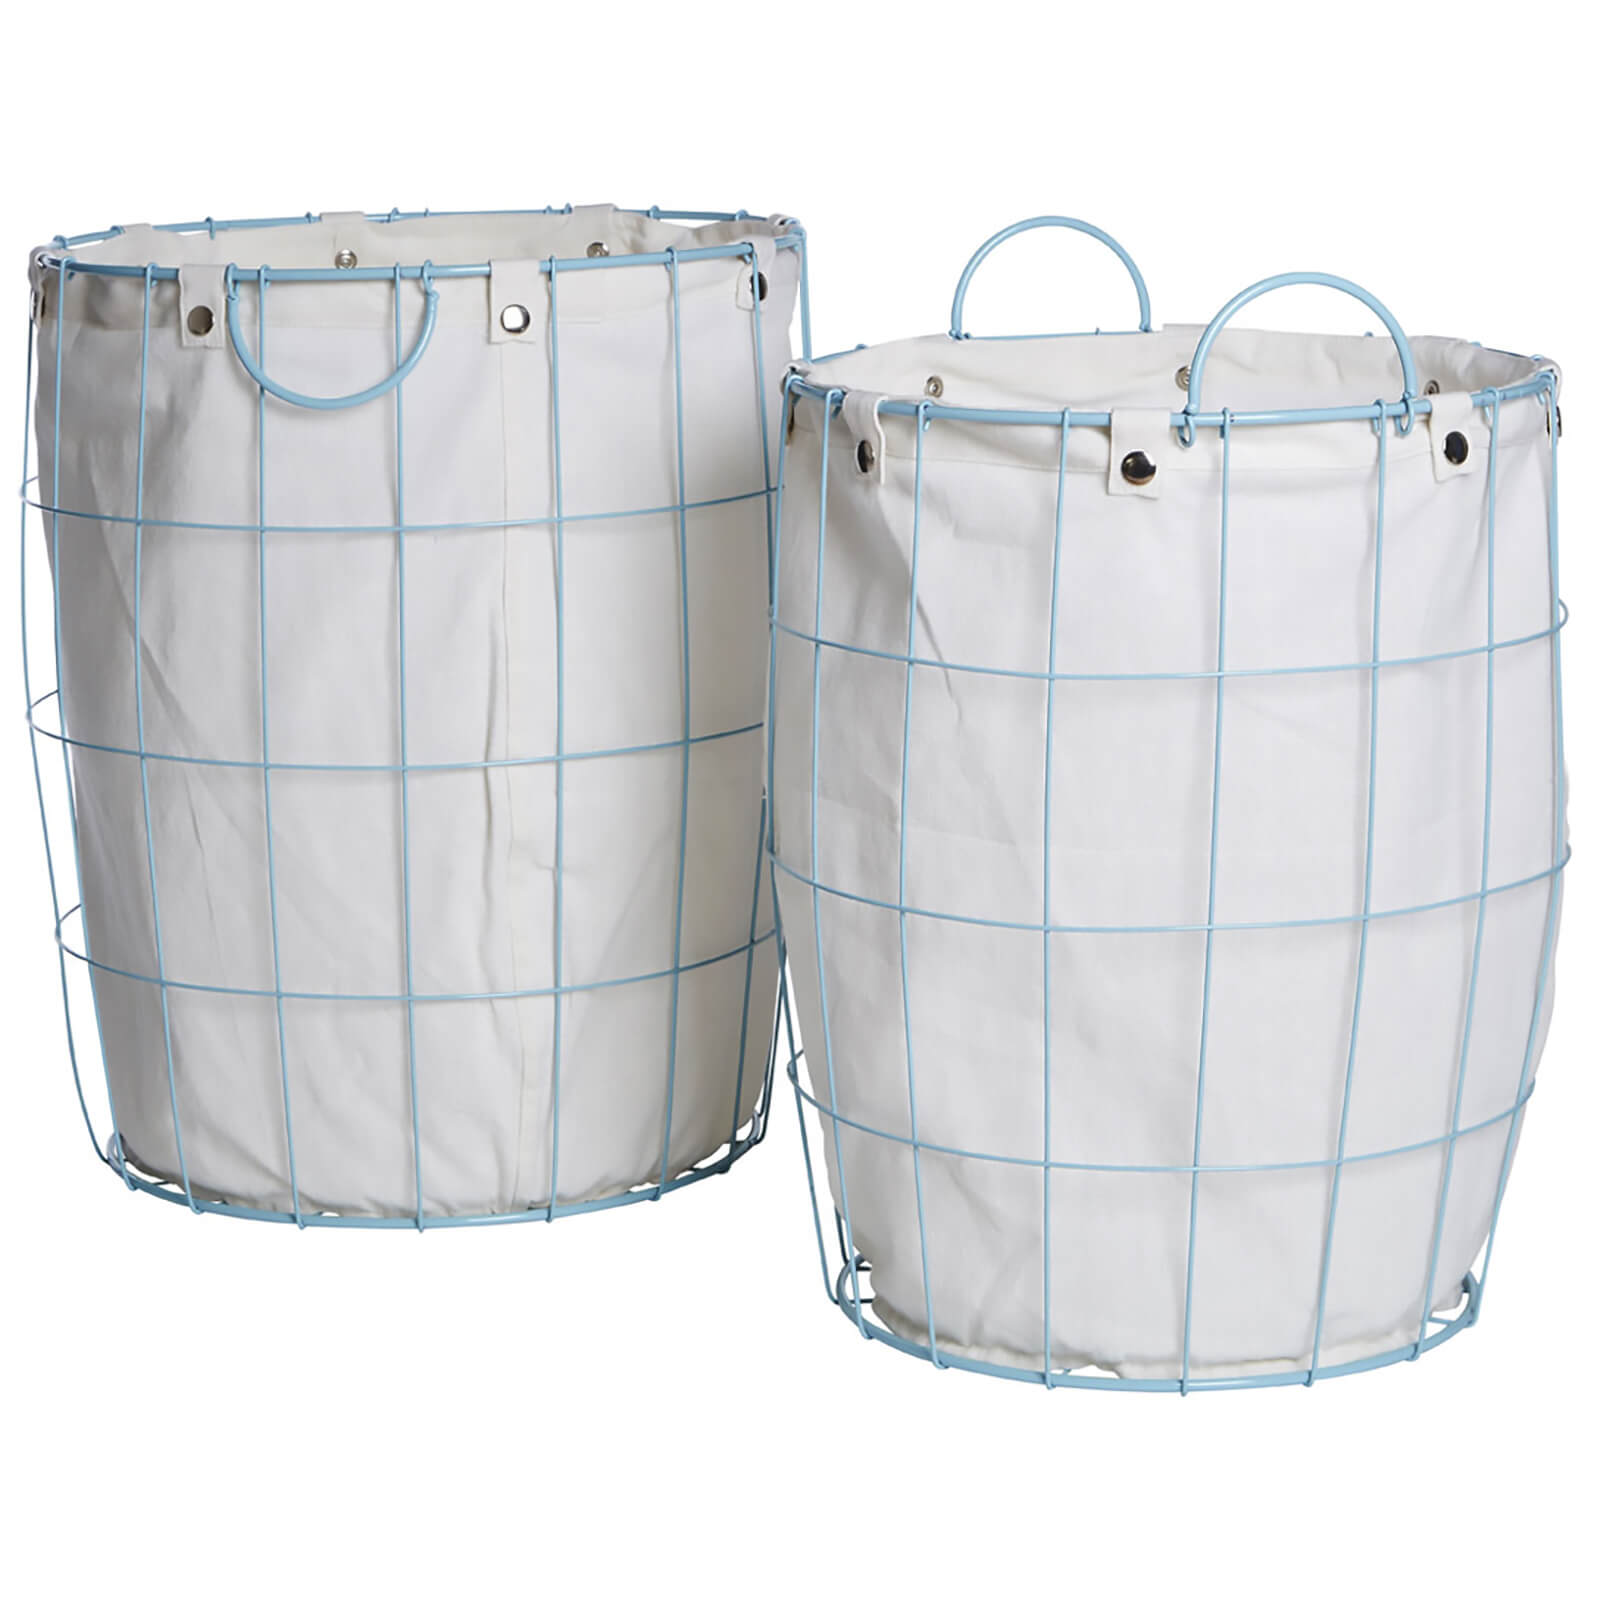 Fifty Five South Round Wire Laundry Baskets - Blue/Linen (Set of 2)